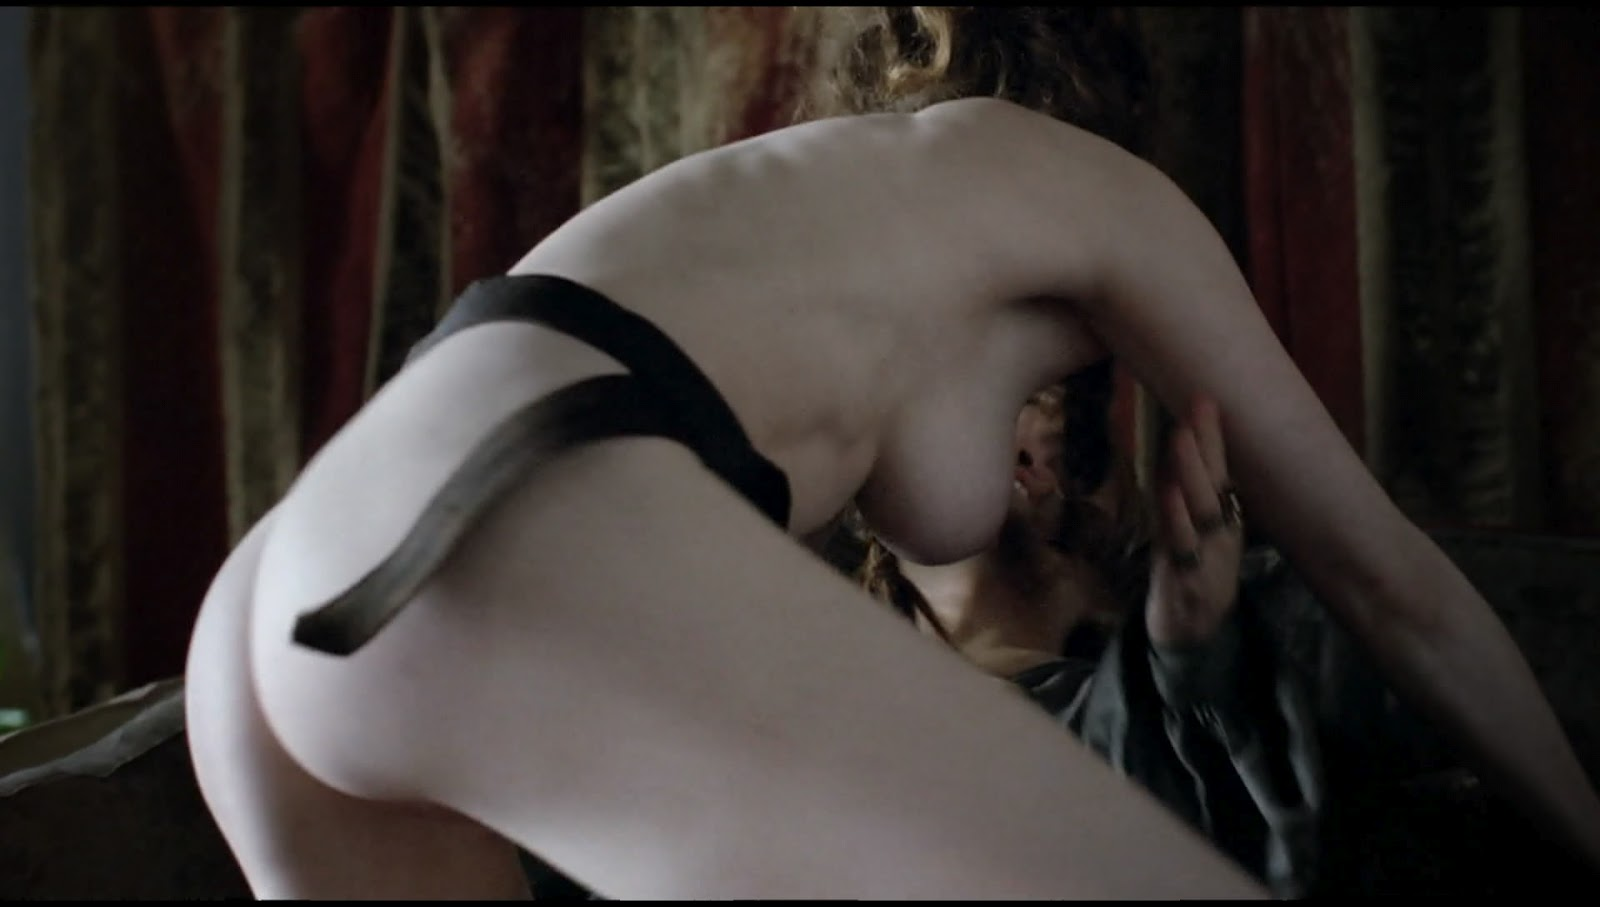 Game Of Thrones Esme Bianco Nude